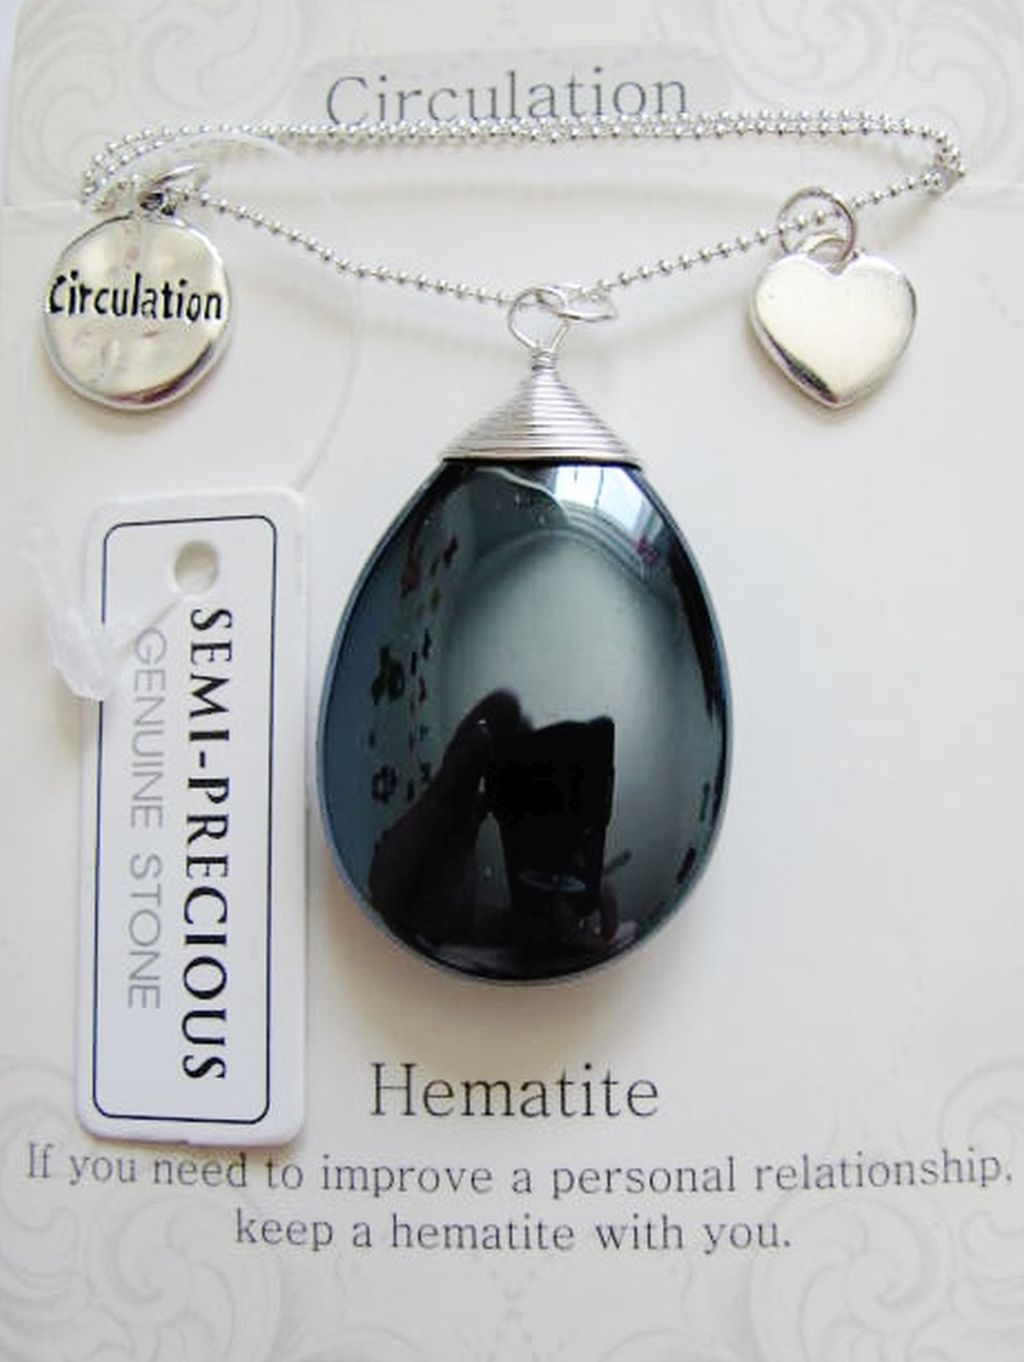 Circulation Stone Genuine Hematite Tear Drop Pendant Necklace w/ Charms